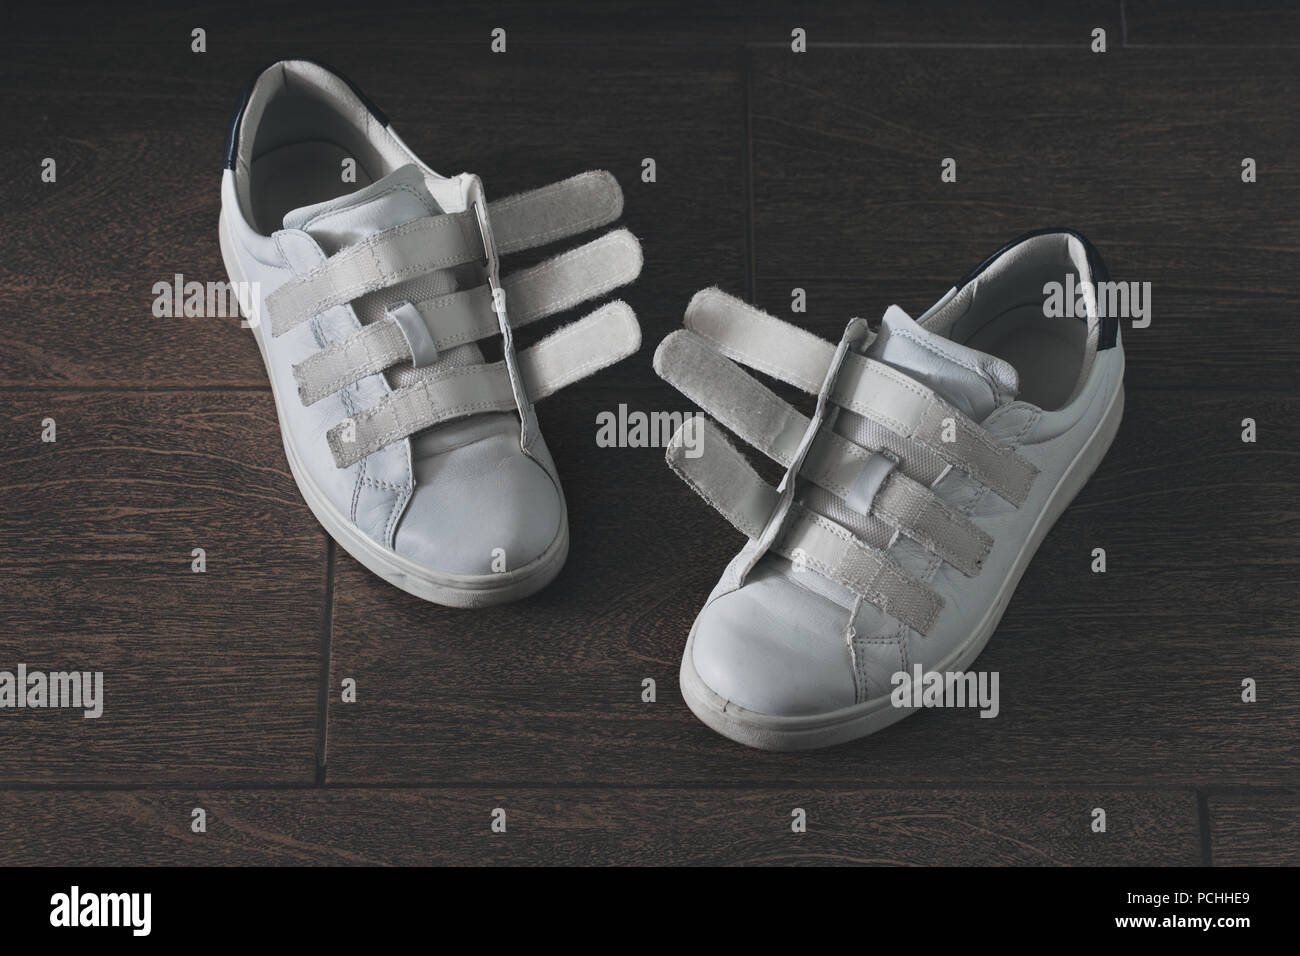 Pair of white, worn-out shoes on velcro, close-up - Stock Image